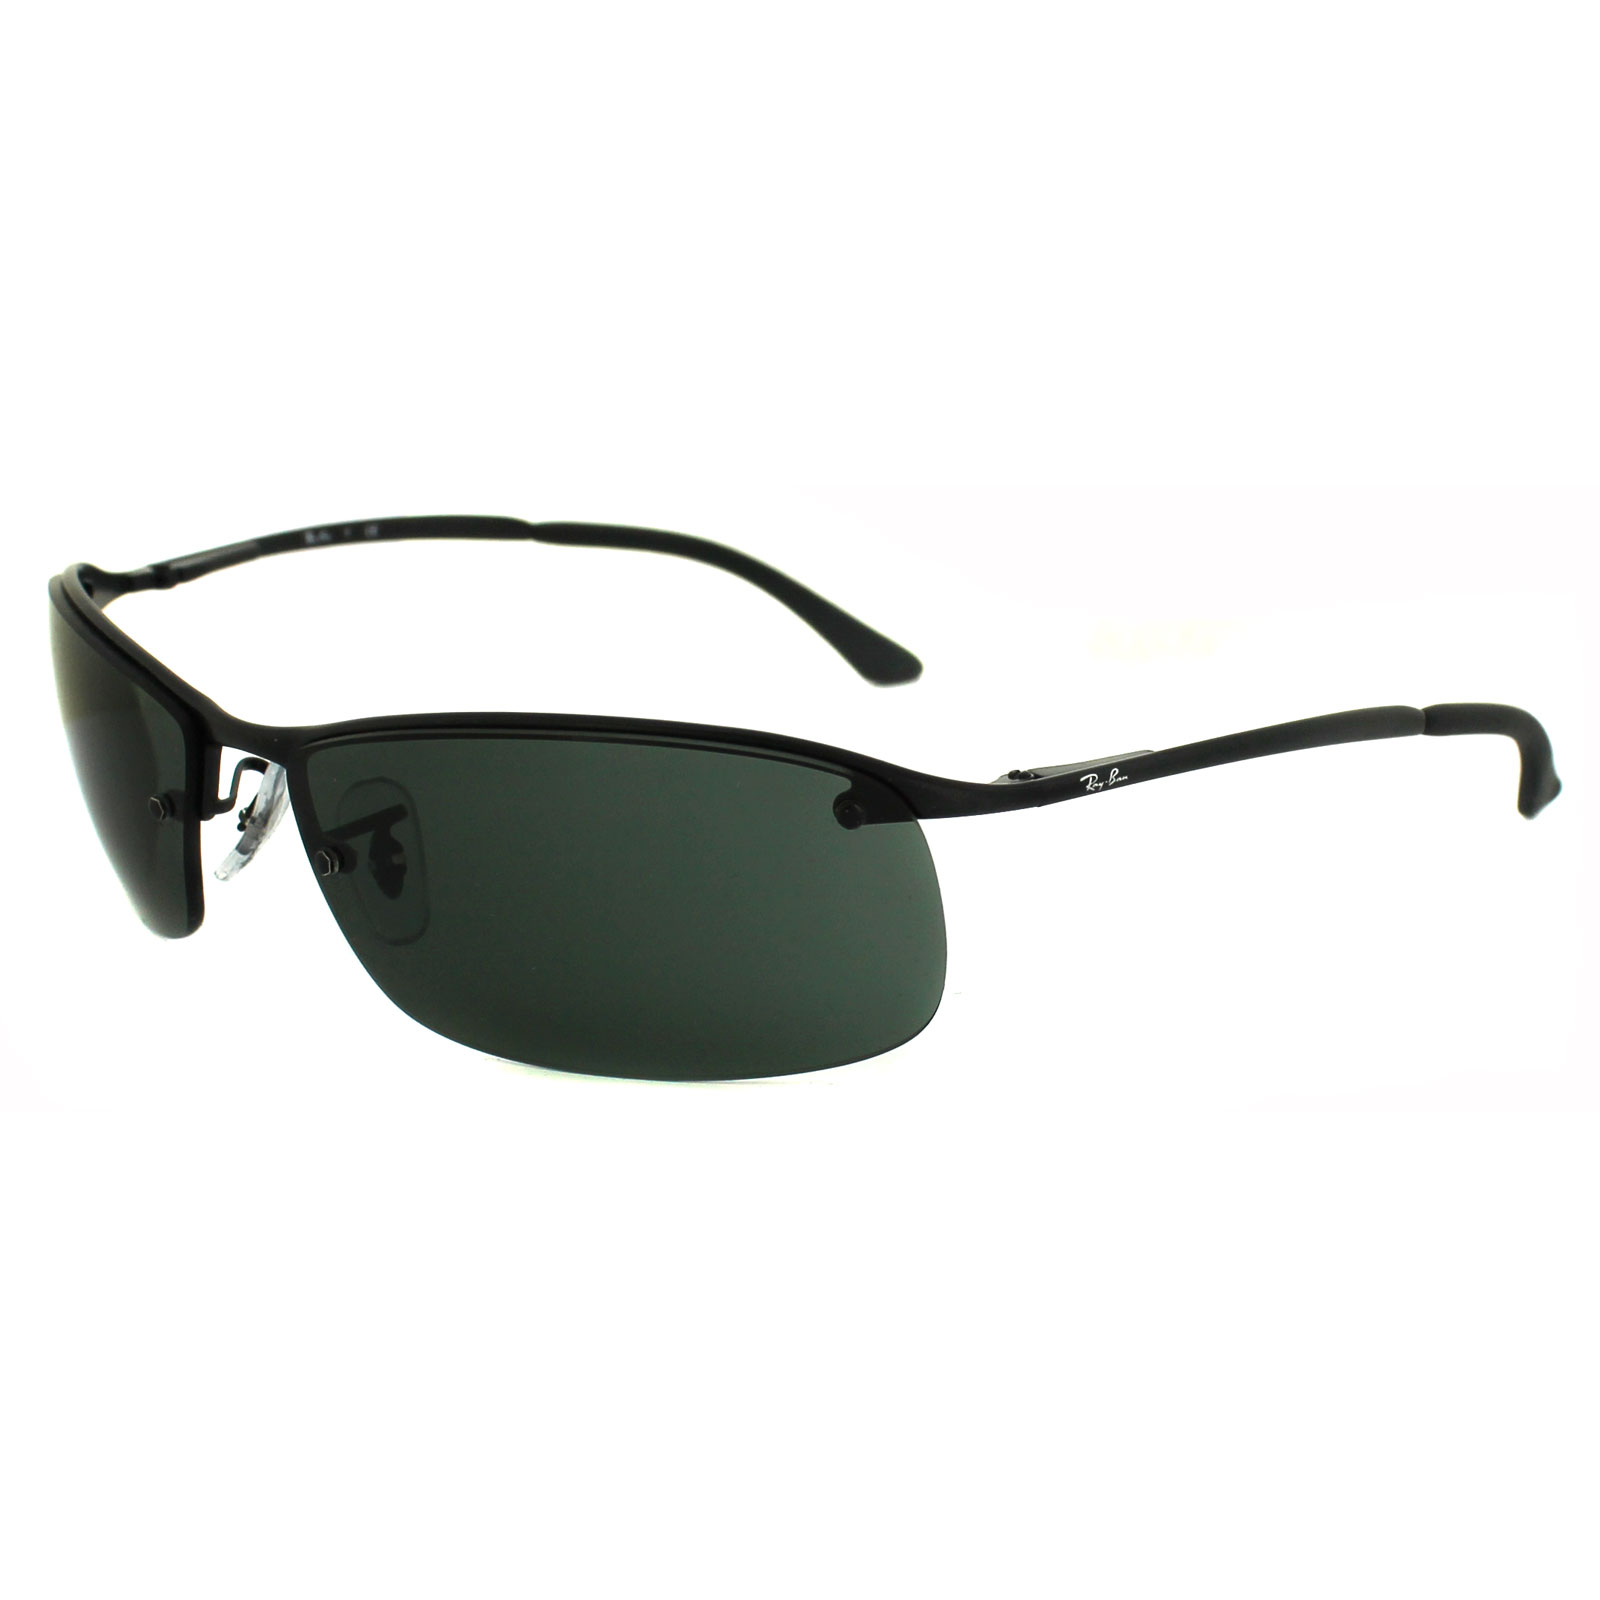 Rb3183 006/71 Matte Black Green 63/15 125 SJO2Iit